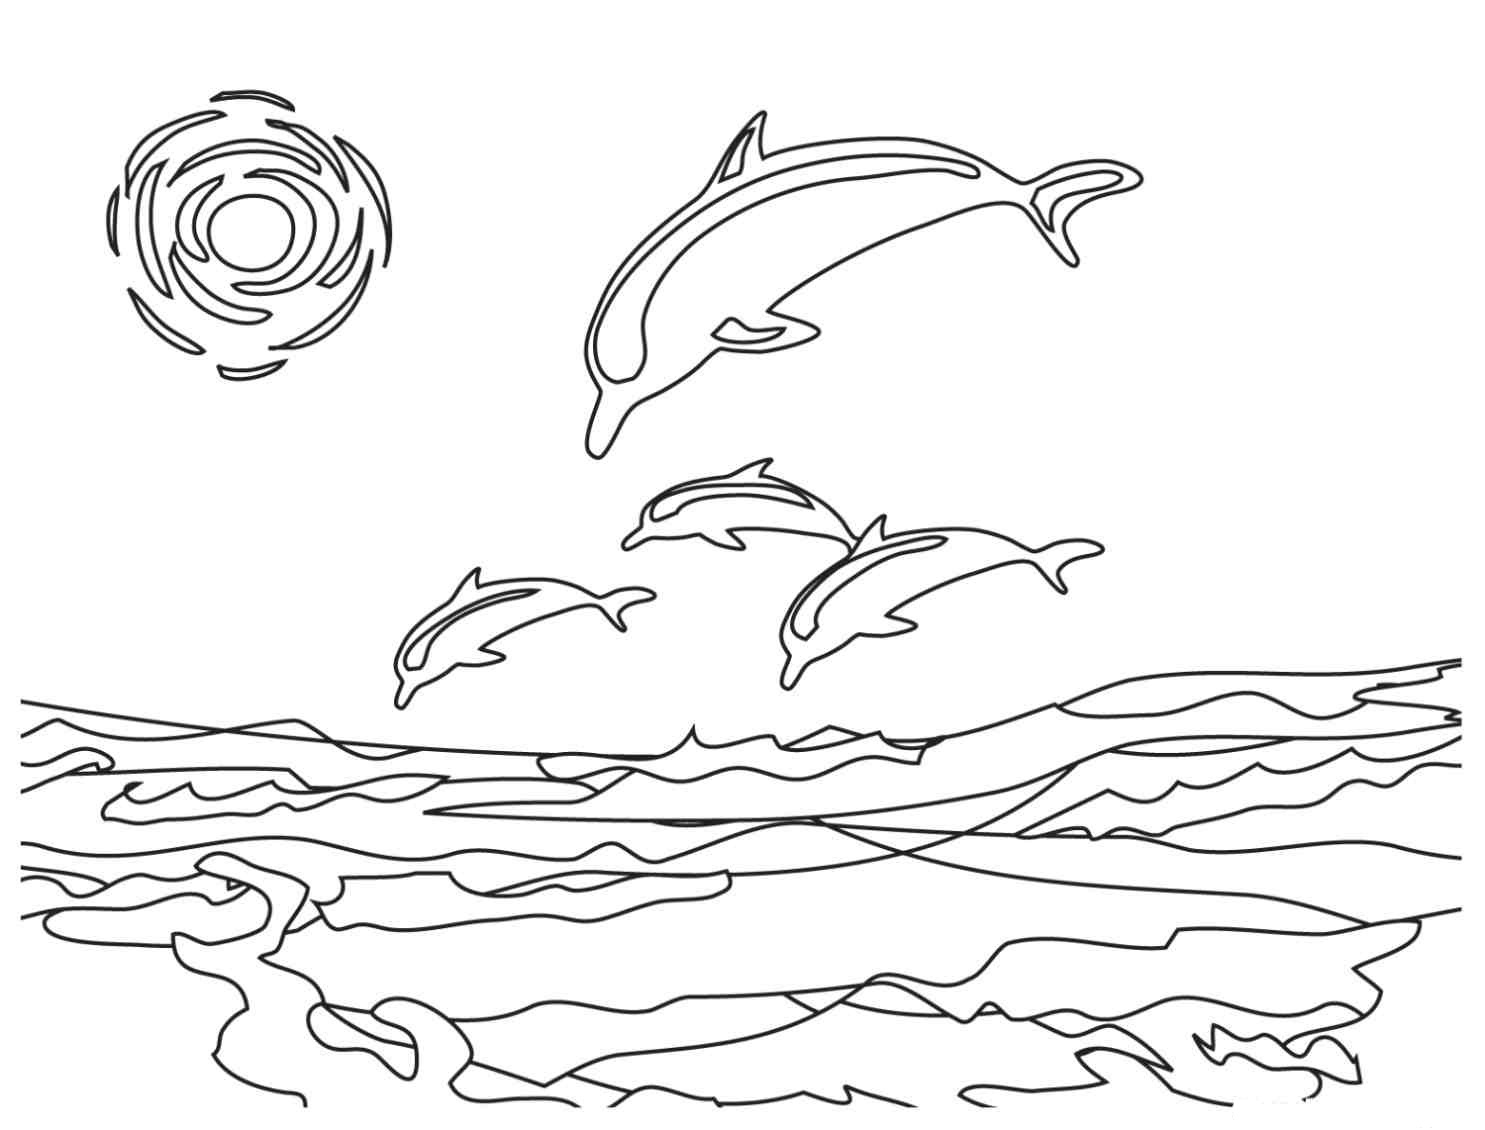 dolphin coloring pictures to print dolphin coloring pages 6 coloring kids to pictures dolphin print coloring